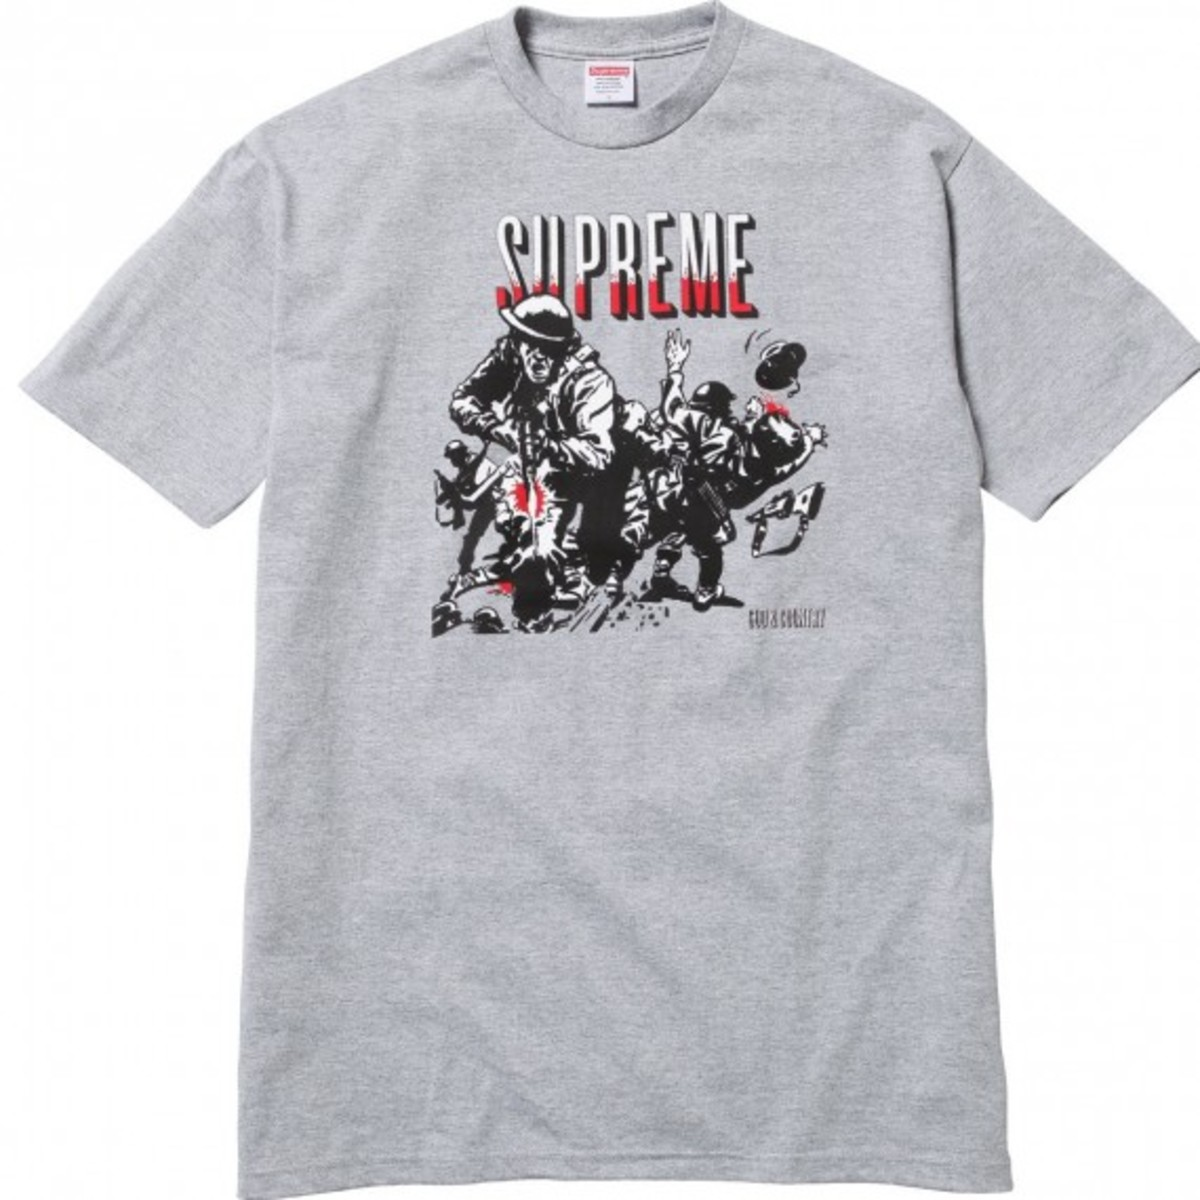 supreme-fall-winter-2011-collection-available-now-13